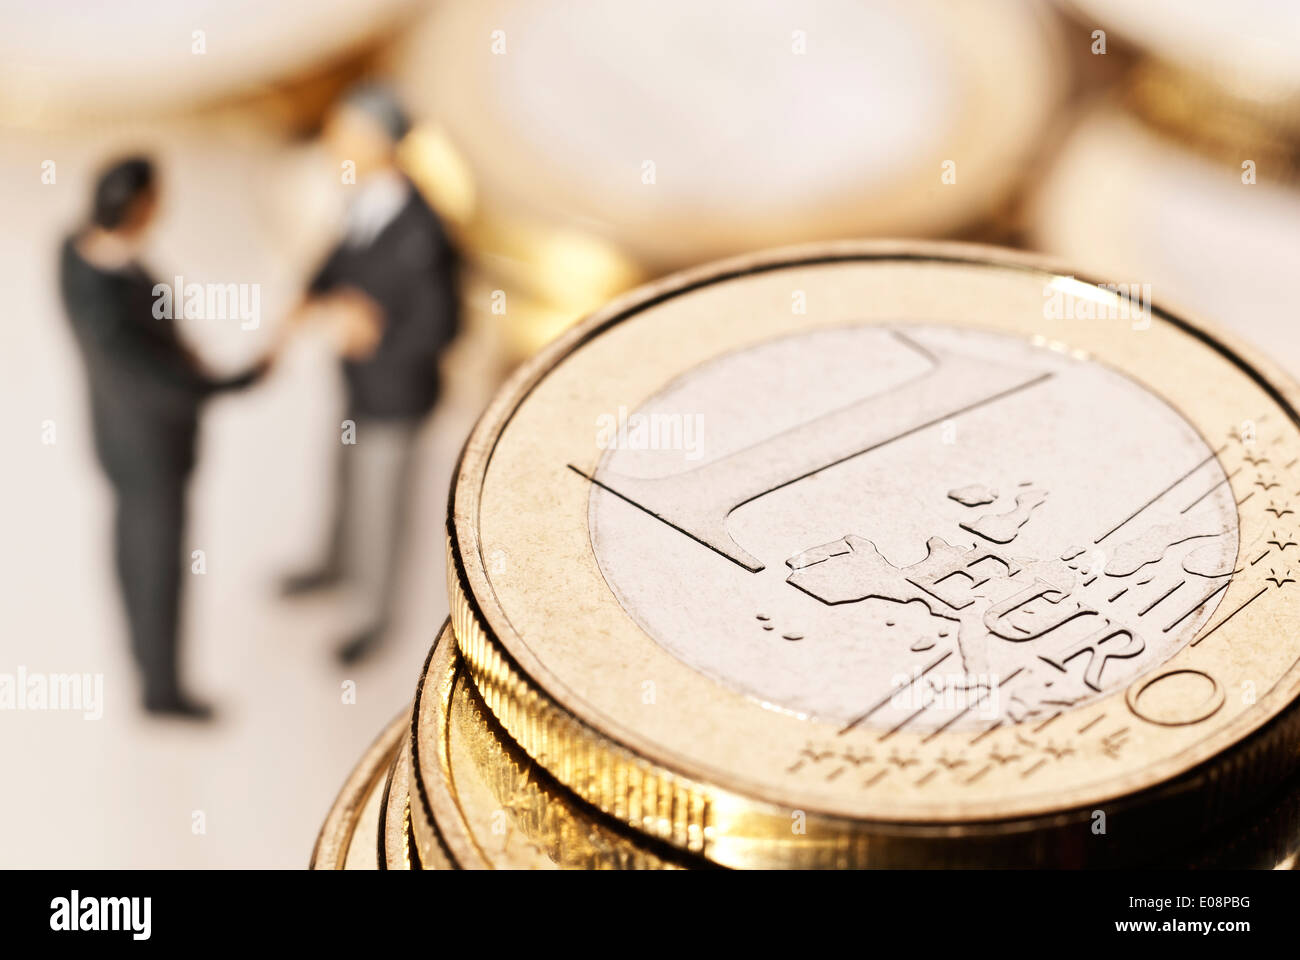 Euro coins and two businessmen in the background Stock Photo